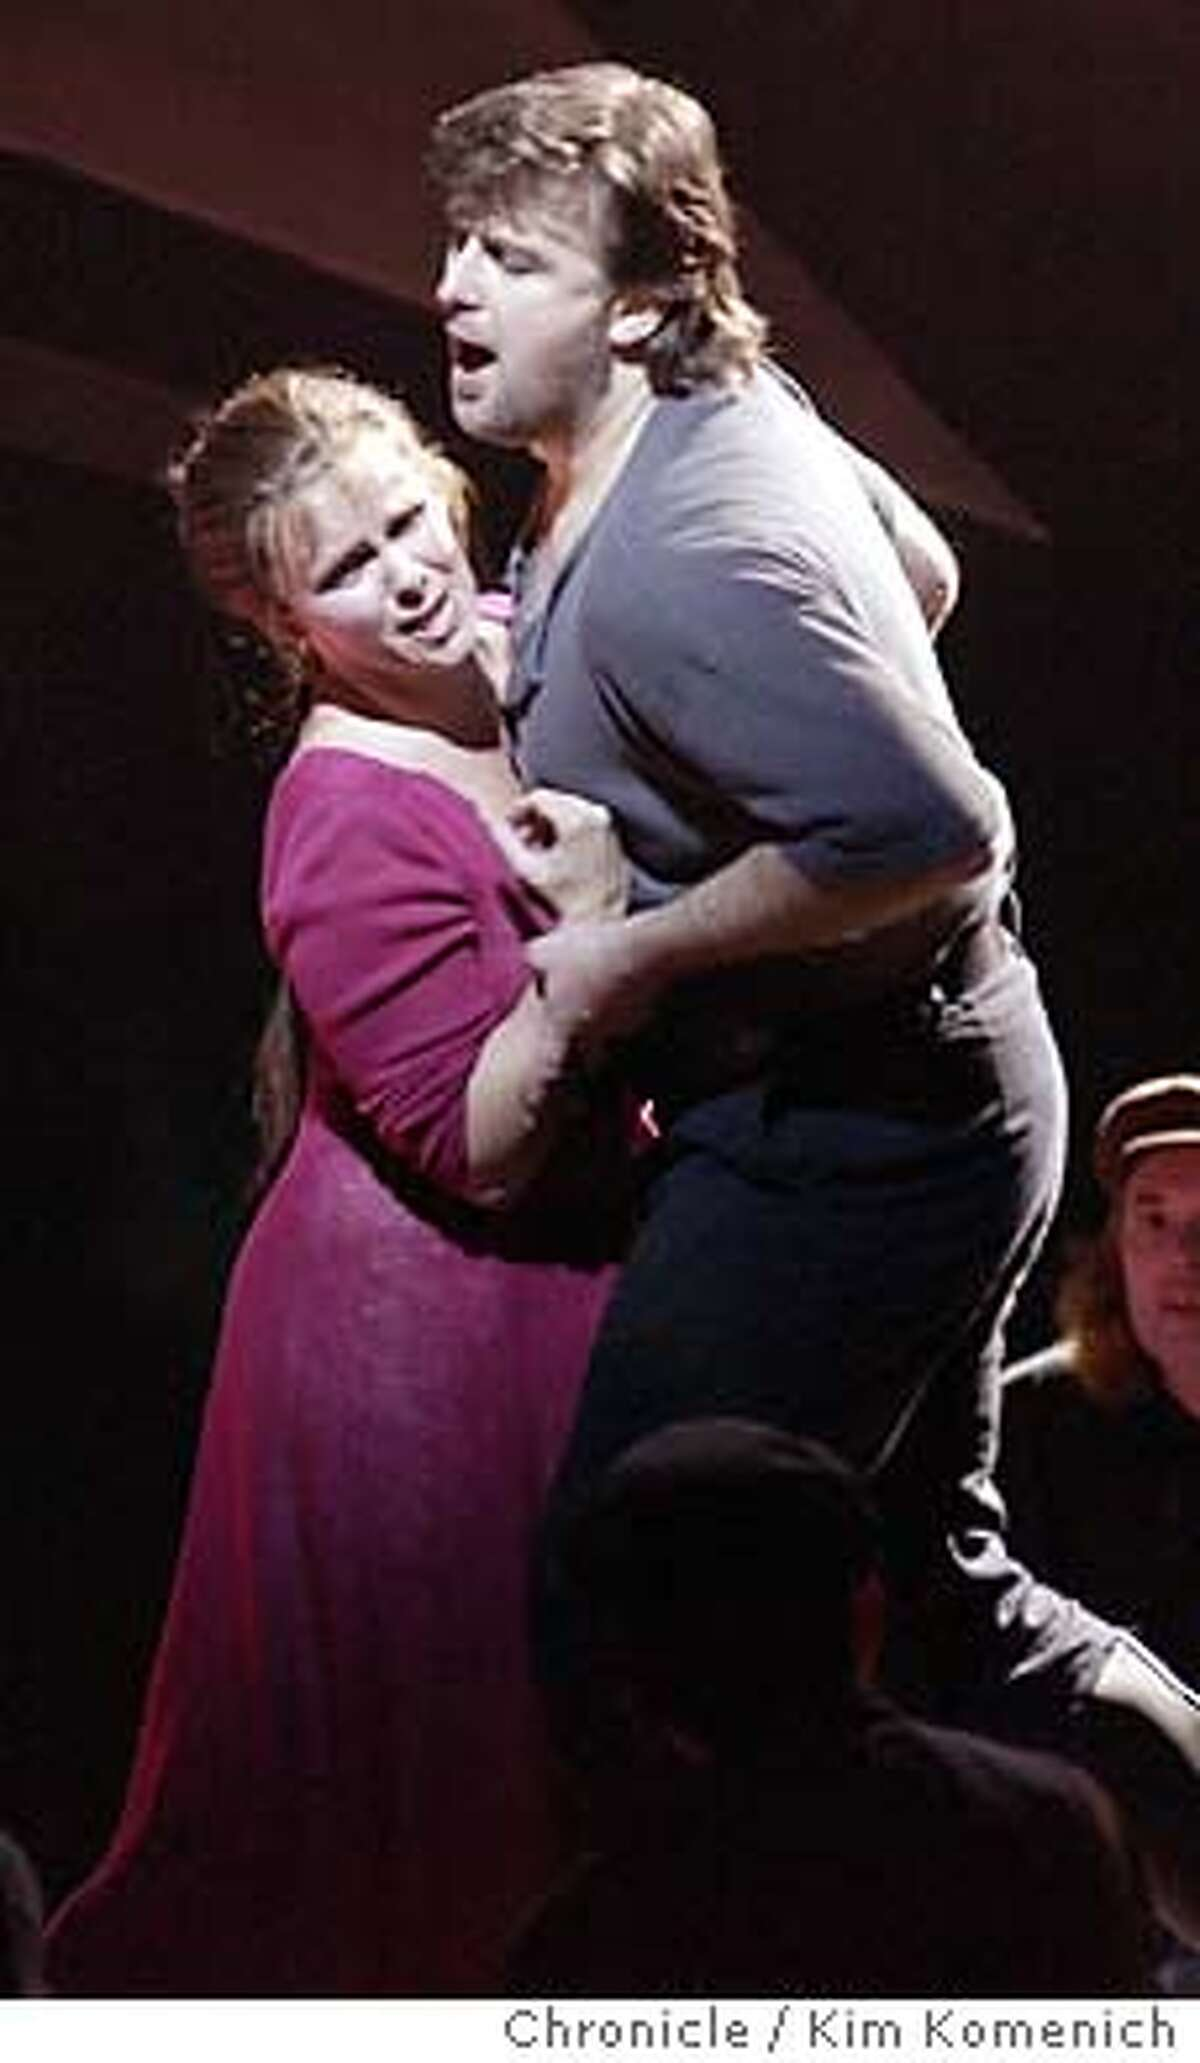 11/6/03 in San Francisco. San Francisco Opera presents Lady Macbeth of Mtsensk. Katerina (Solveig Kringelborn) accepts a challenge from Sergei (Christopher Ventris) to prove her strength. KIM KOMENICH / The Chronicle